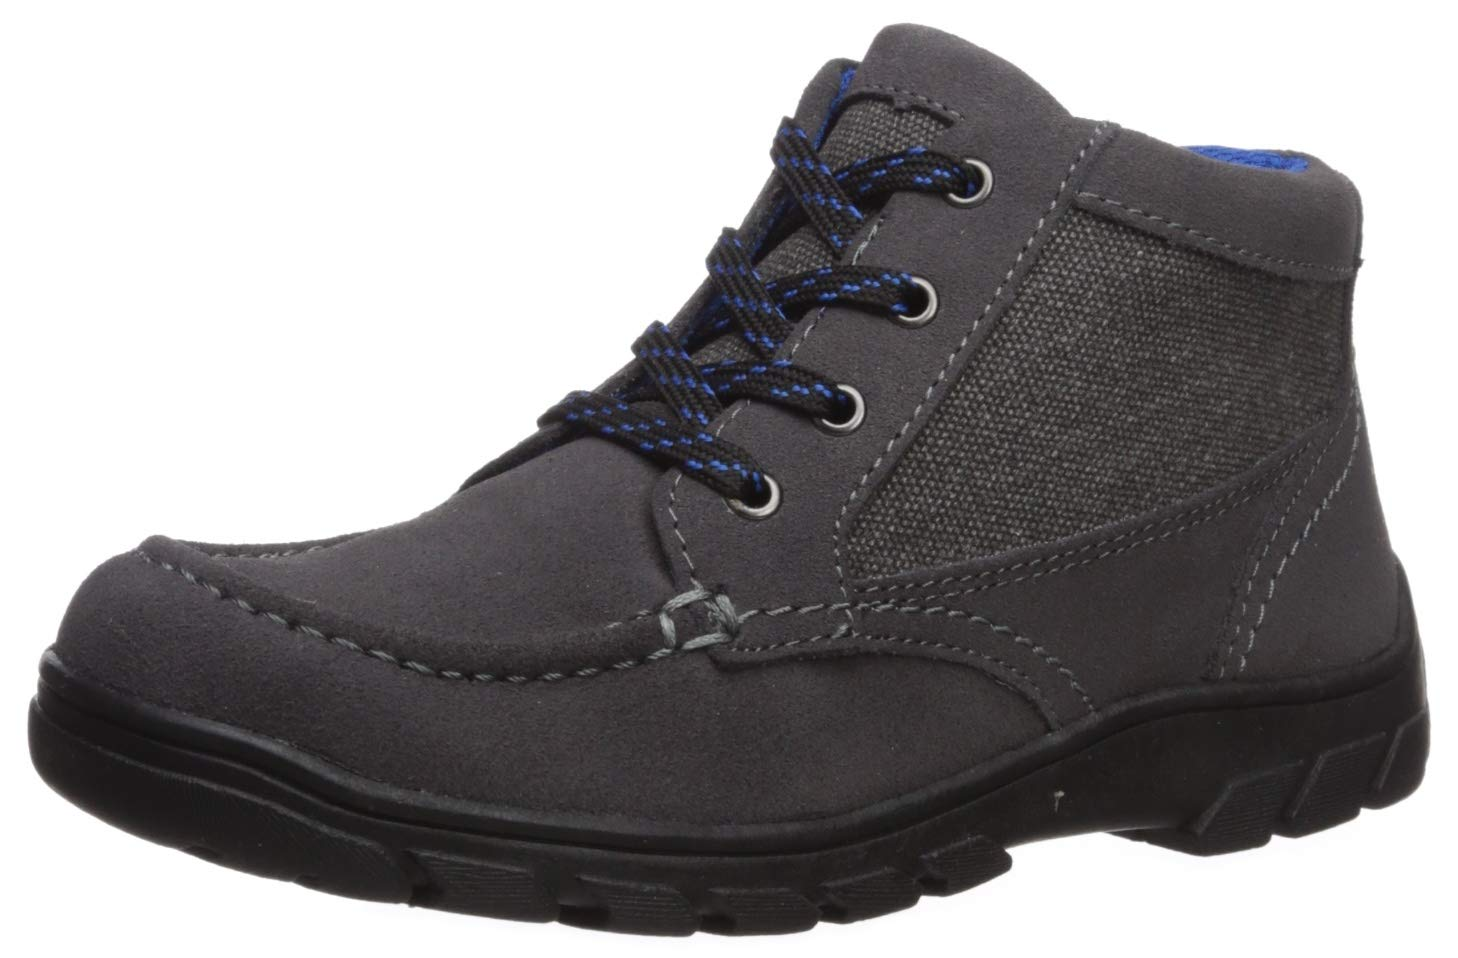 Florsheim Kids Boys' Trektion Hiker Jr, Dark Gray, 1 M US Little Kid